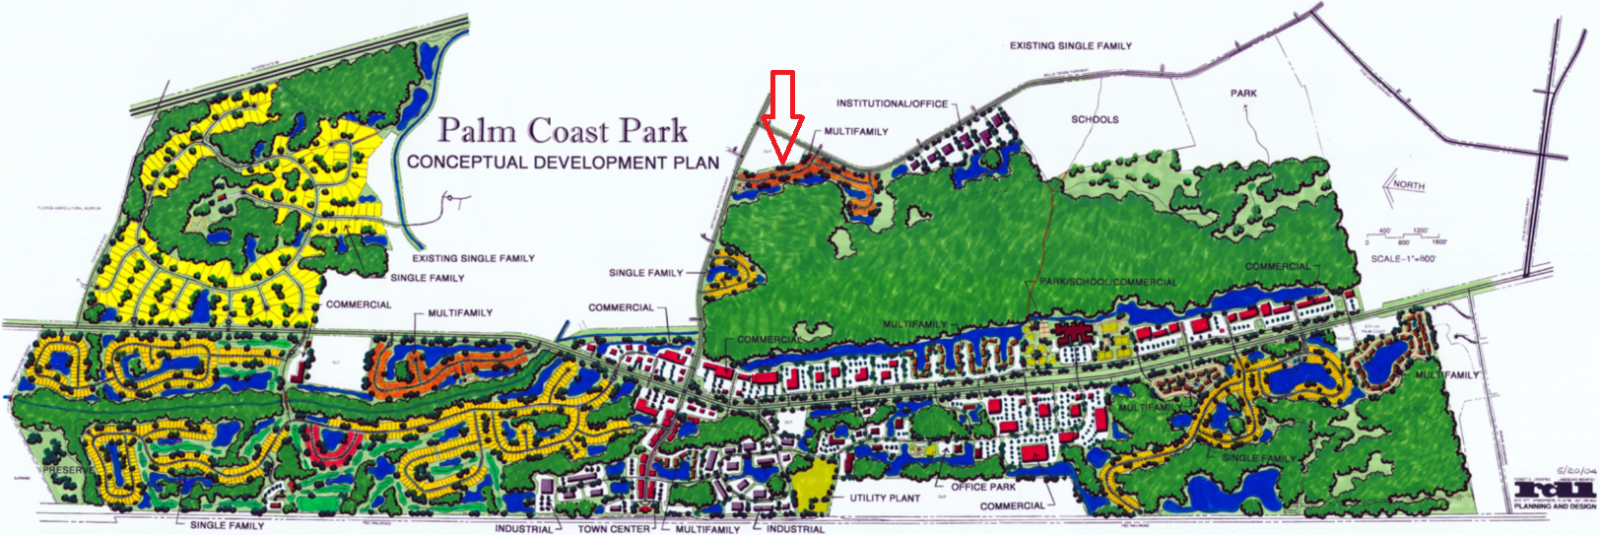 Palm Coast Park Development Plan